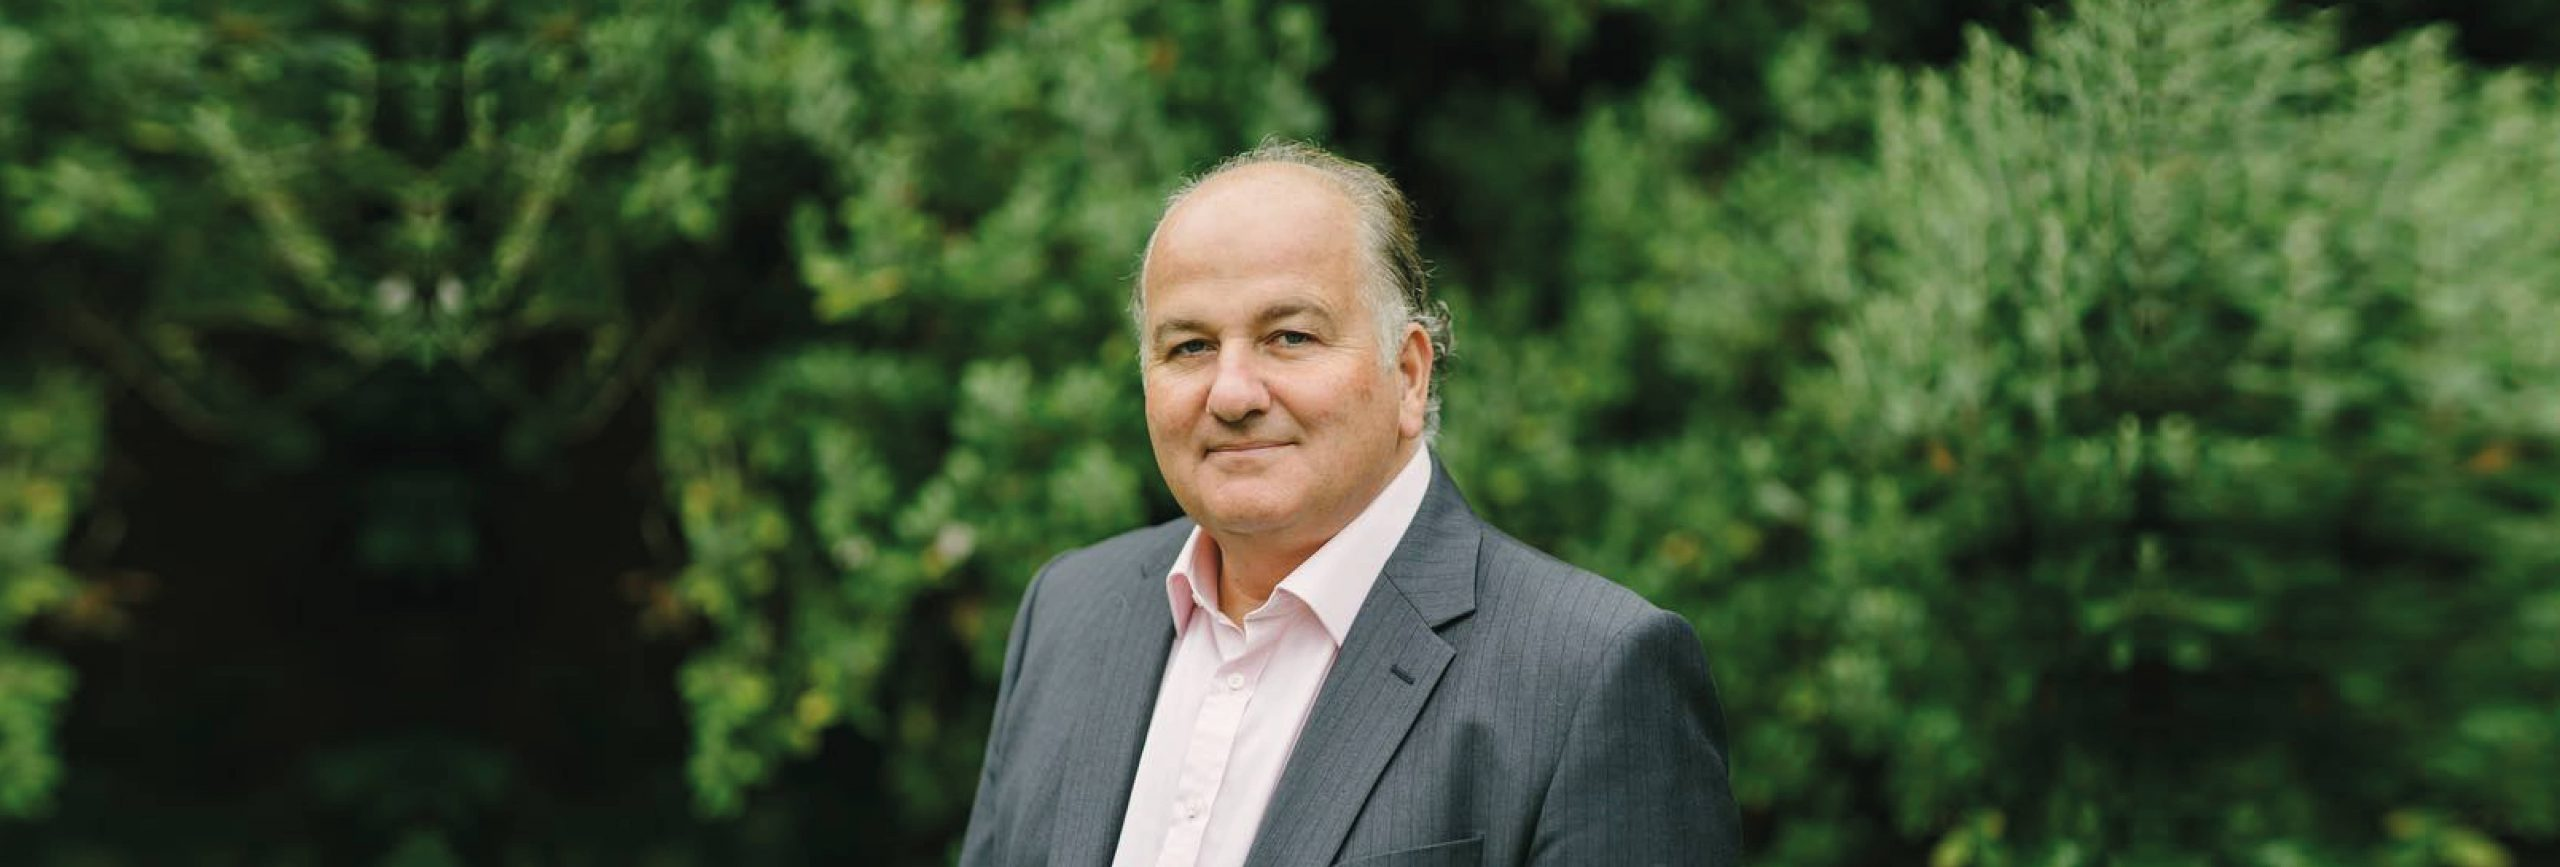 David Kirk - A qualified Chartered Accountant